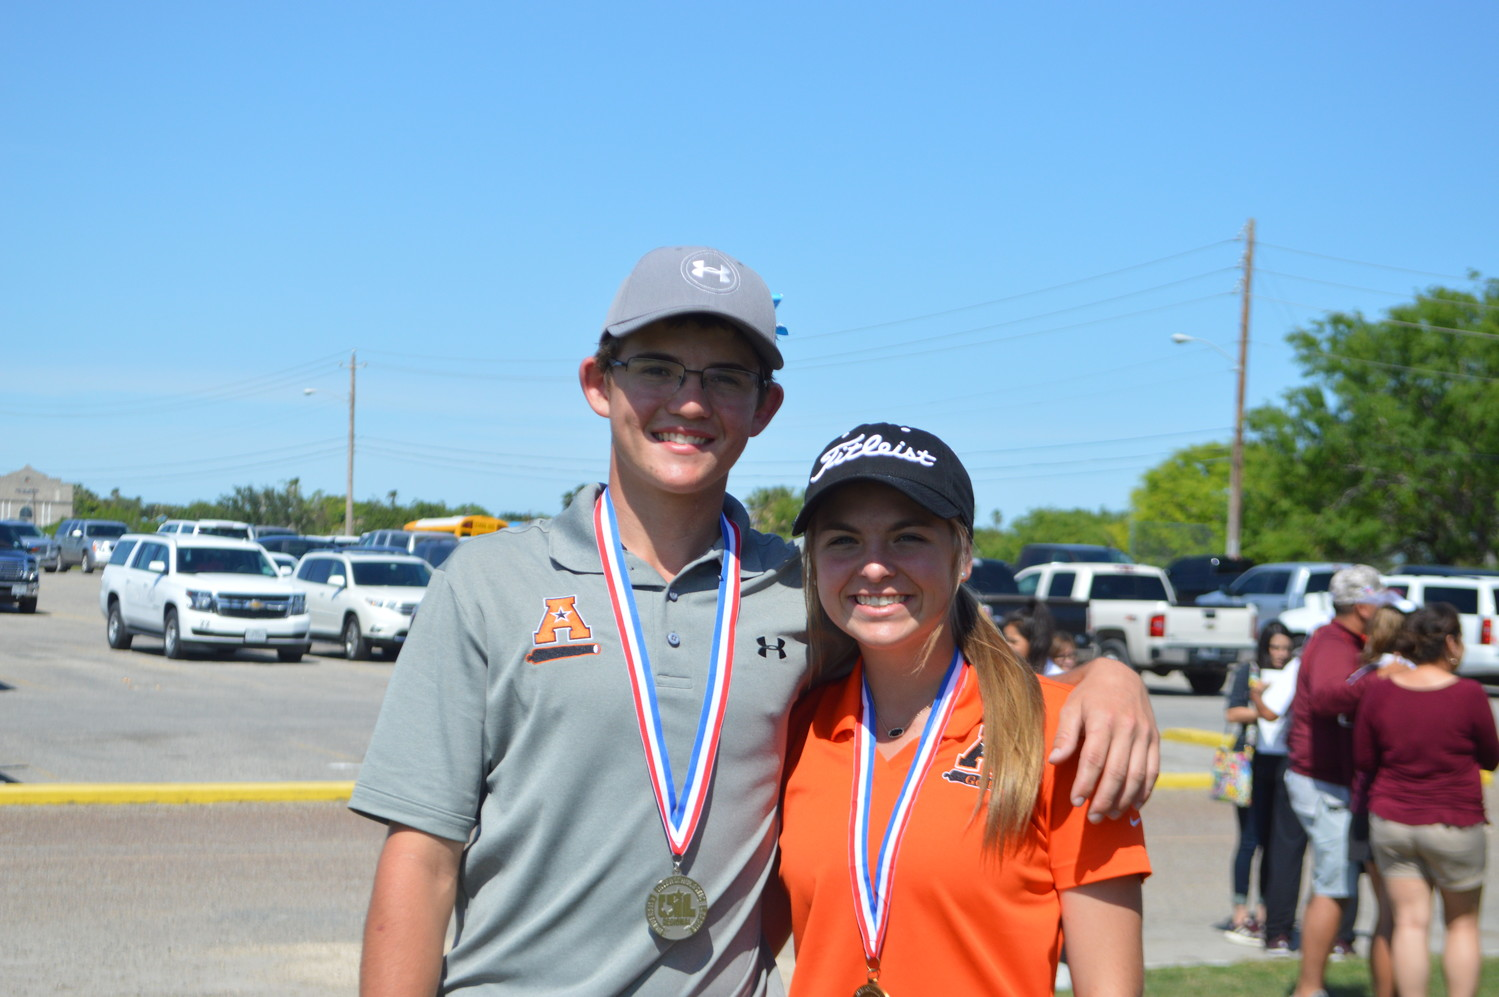 Mason Richter (left) finished middle of the pack in the boys golf state meet earlier this week. Kiley Allen (right) will take on the girls golf state meet this upcoming Monday and Tuesday. Allen's trip to Marble Falls will be her first as a state-qualified competitor.